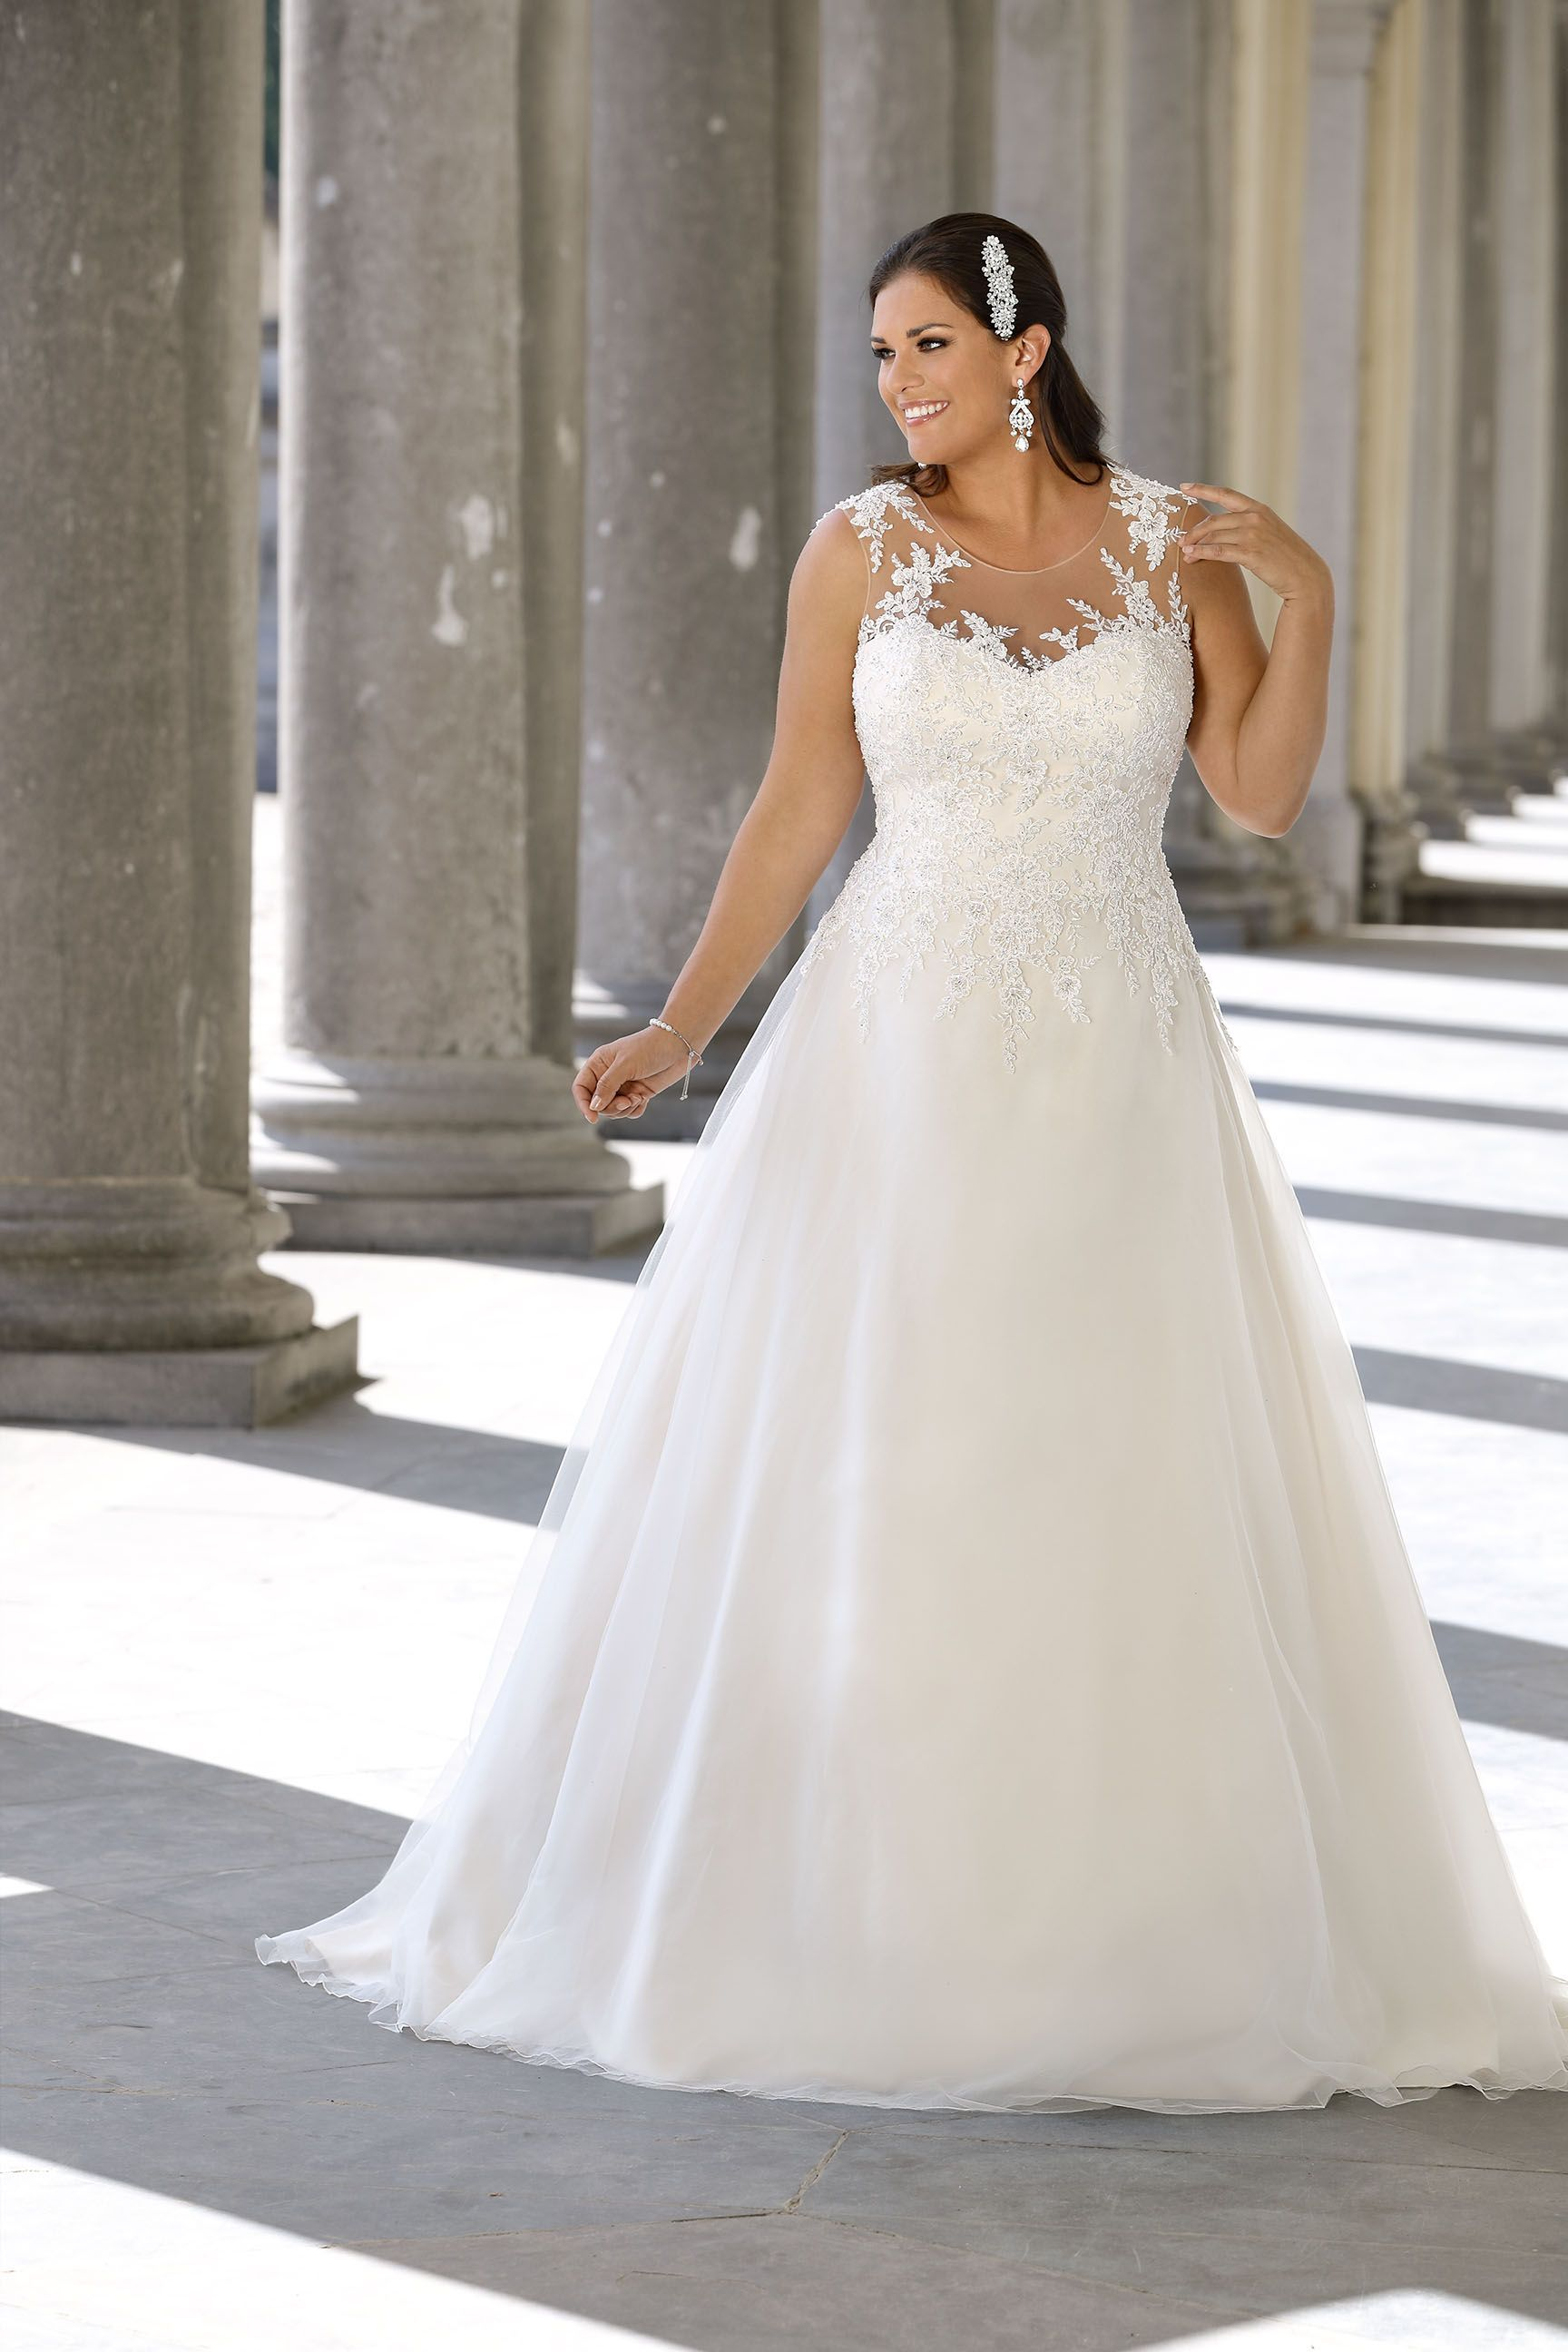 5b648724916 The Ladybird plussize wedding dress collection offers sexy and elegant plus  size wedding dresses in ...